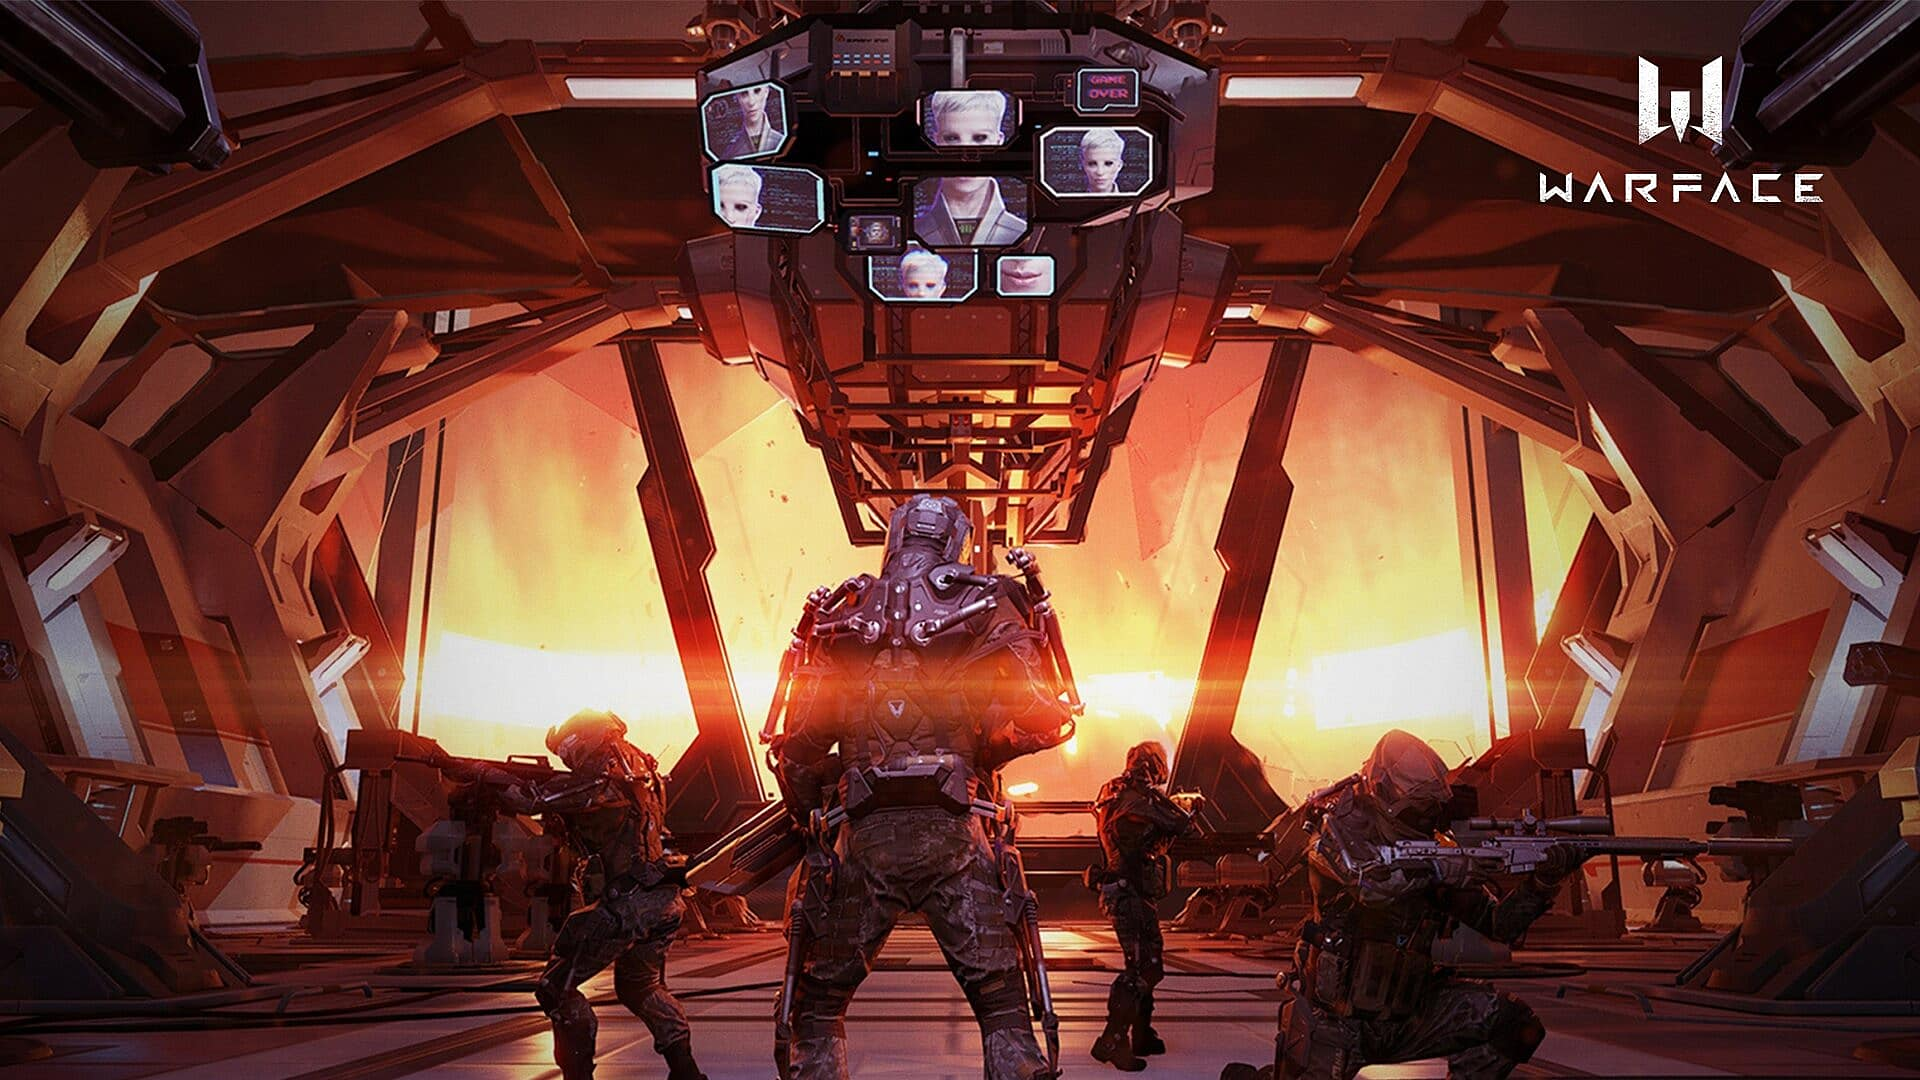 Creative Director of Warface Talks About the Game's New